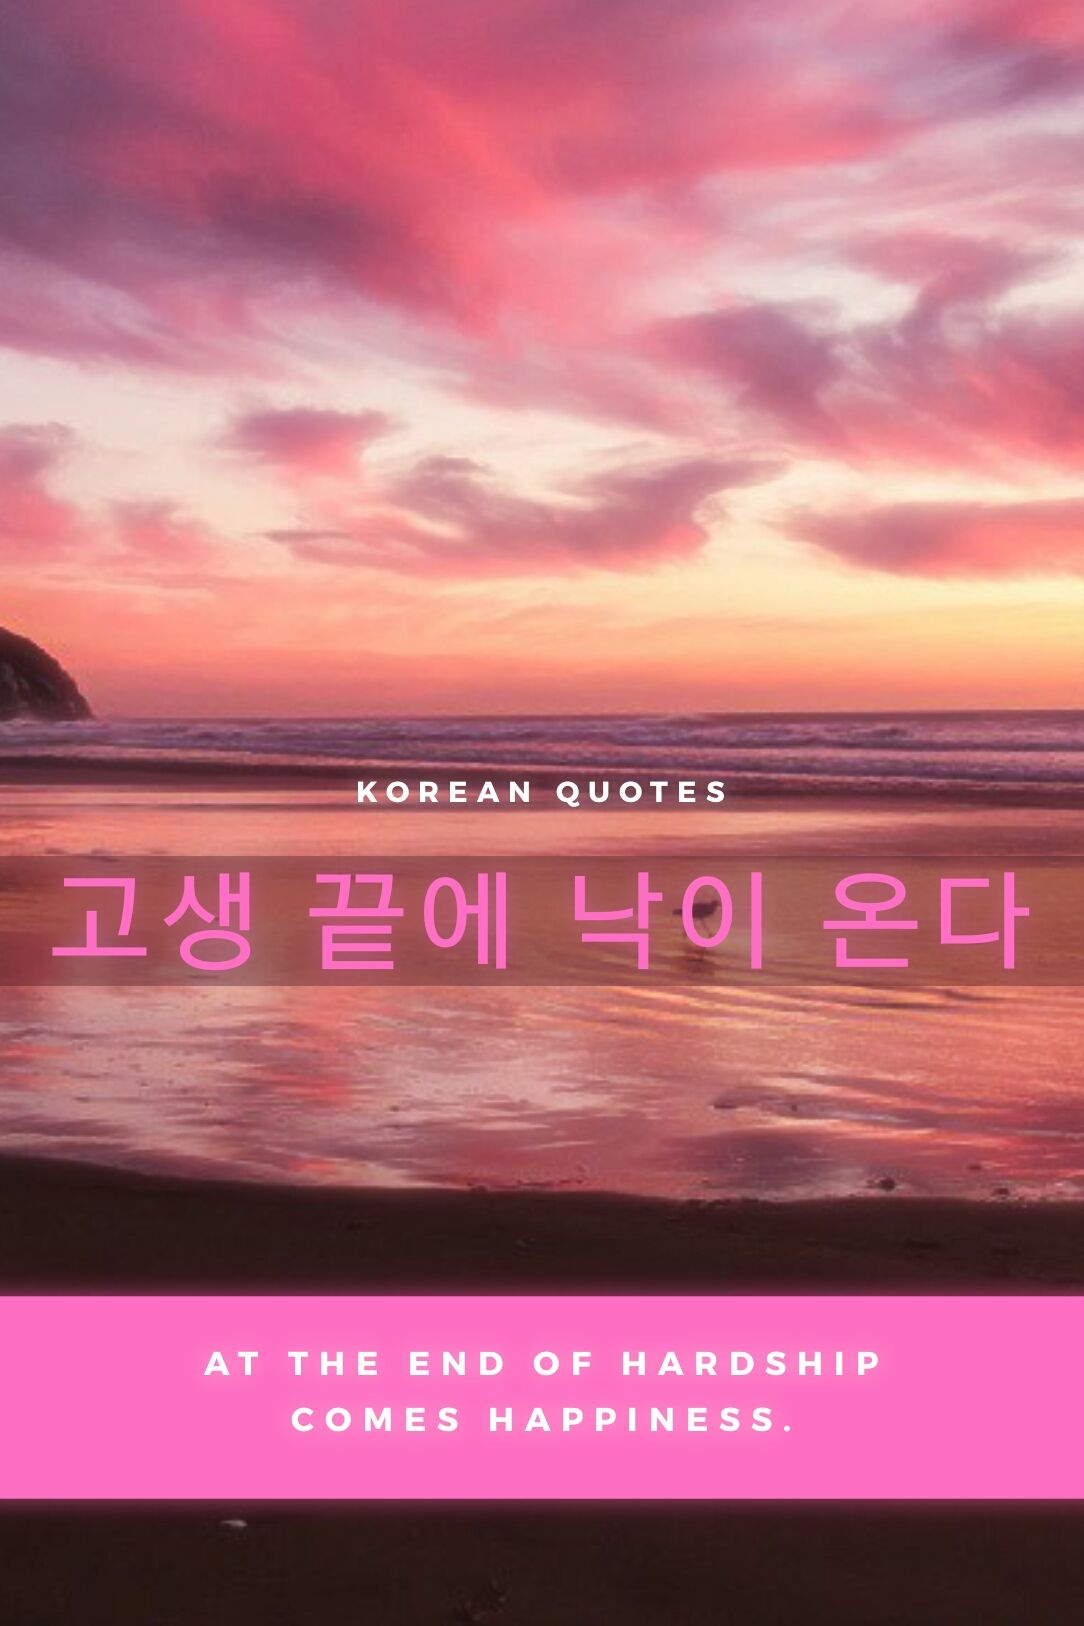 Korean quote: 고생 끝에 낙이 온다 At the end of hardship comes